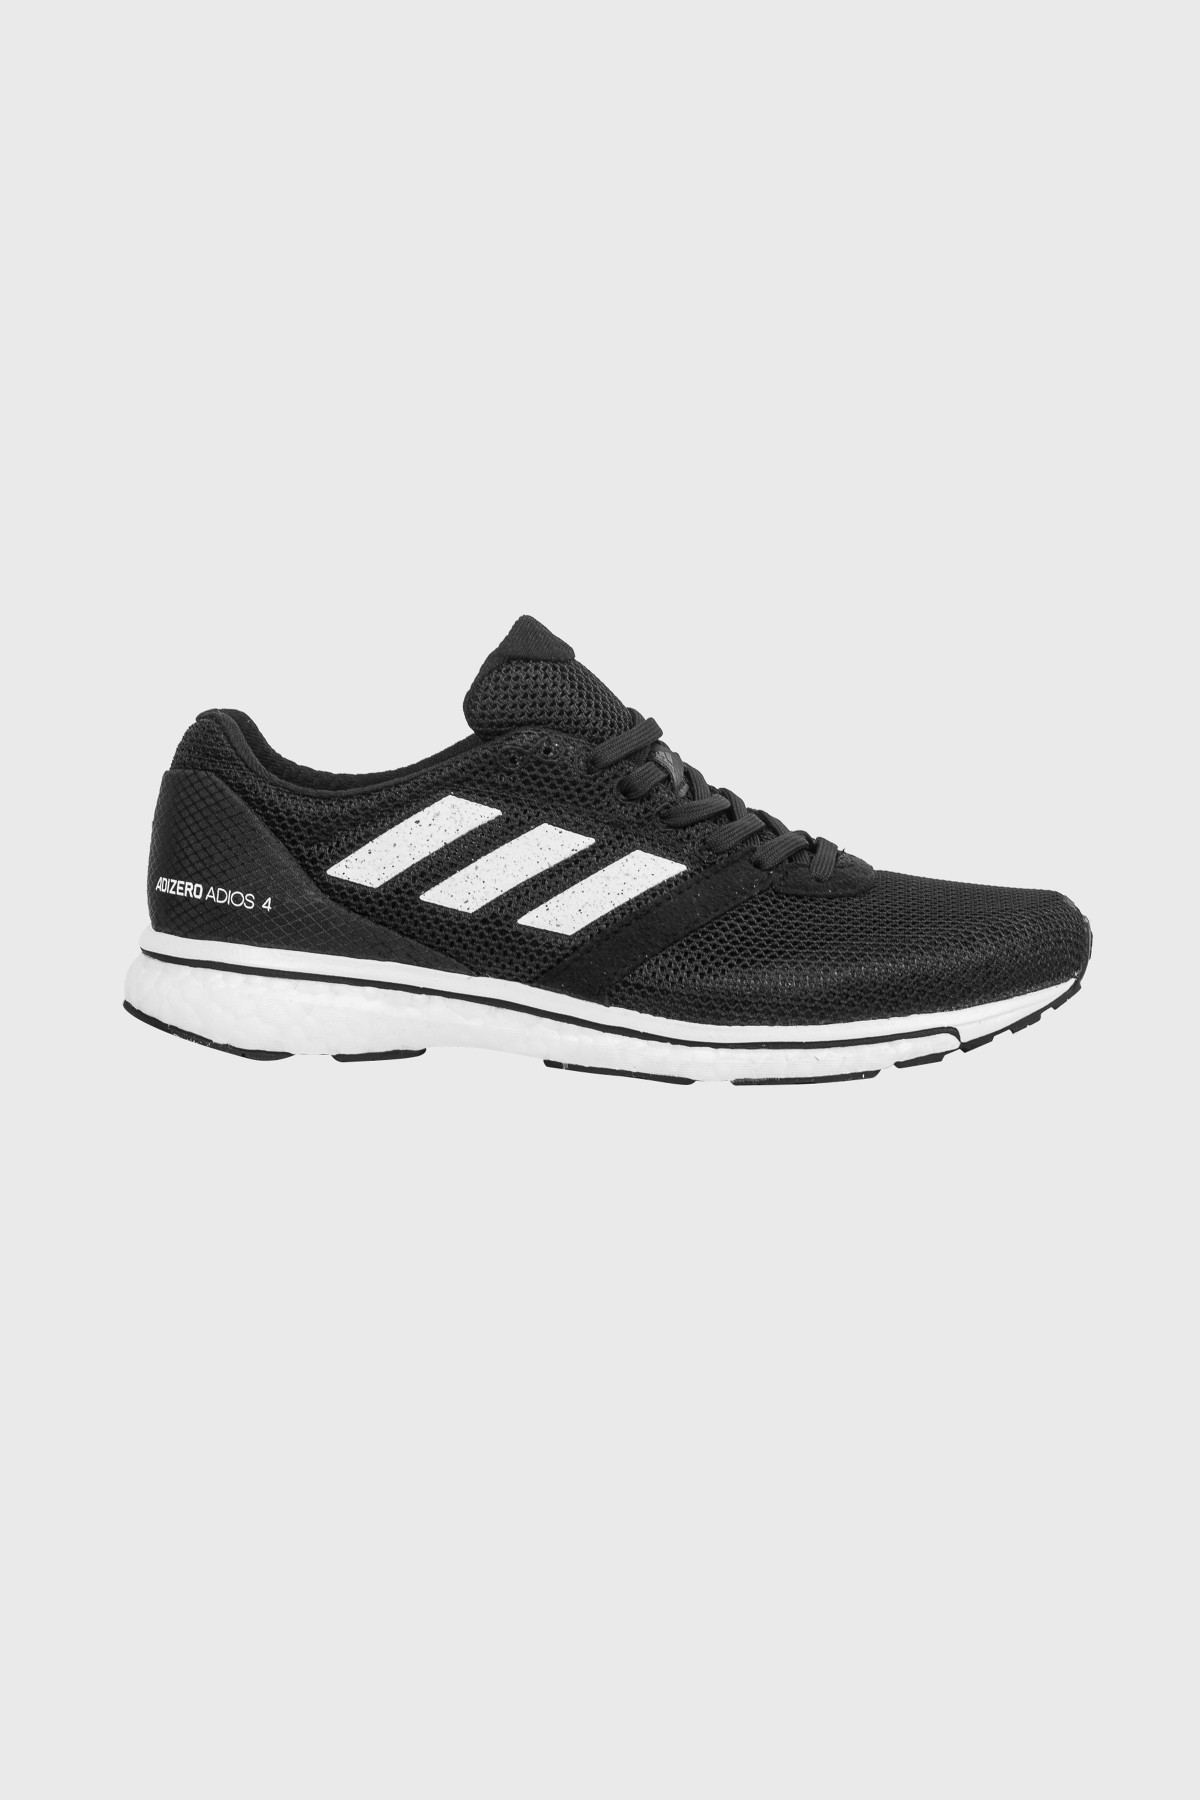 adidas - Adios 4 - core black